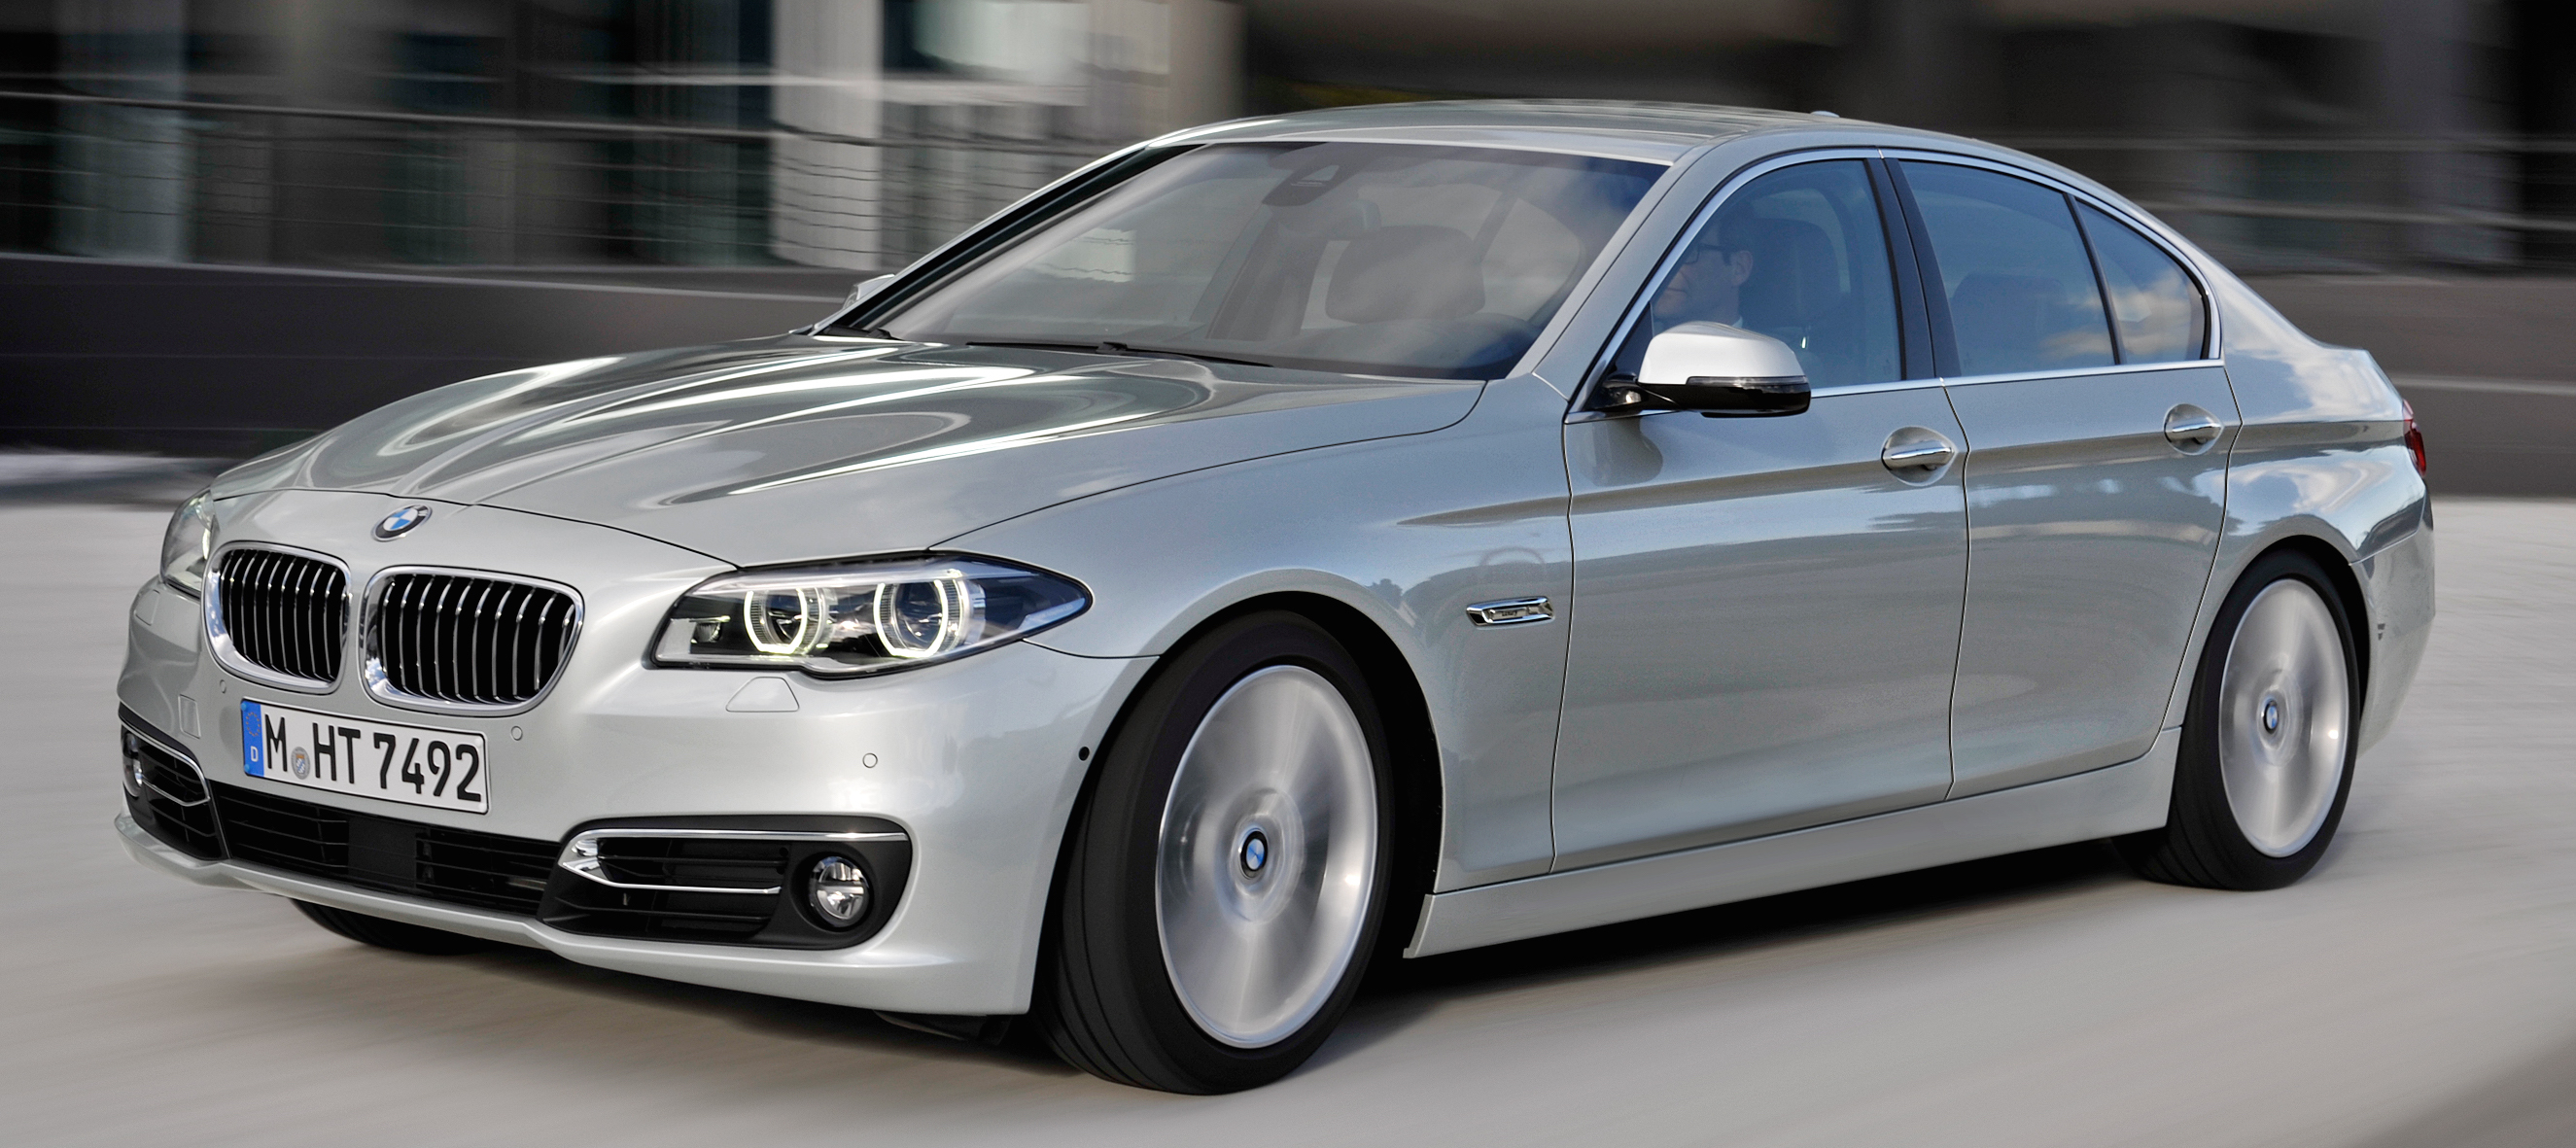 Contact US >> F10 BMW 5 Series sales exceed two million mark Paul Tan - Image 476237